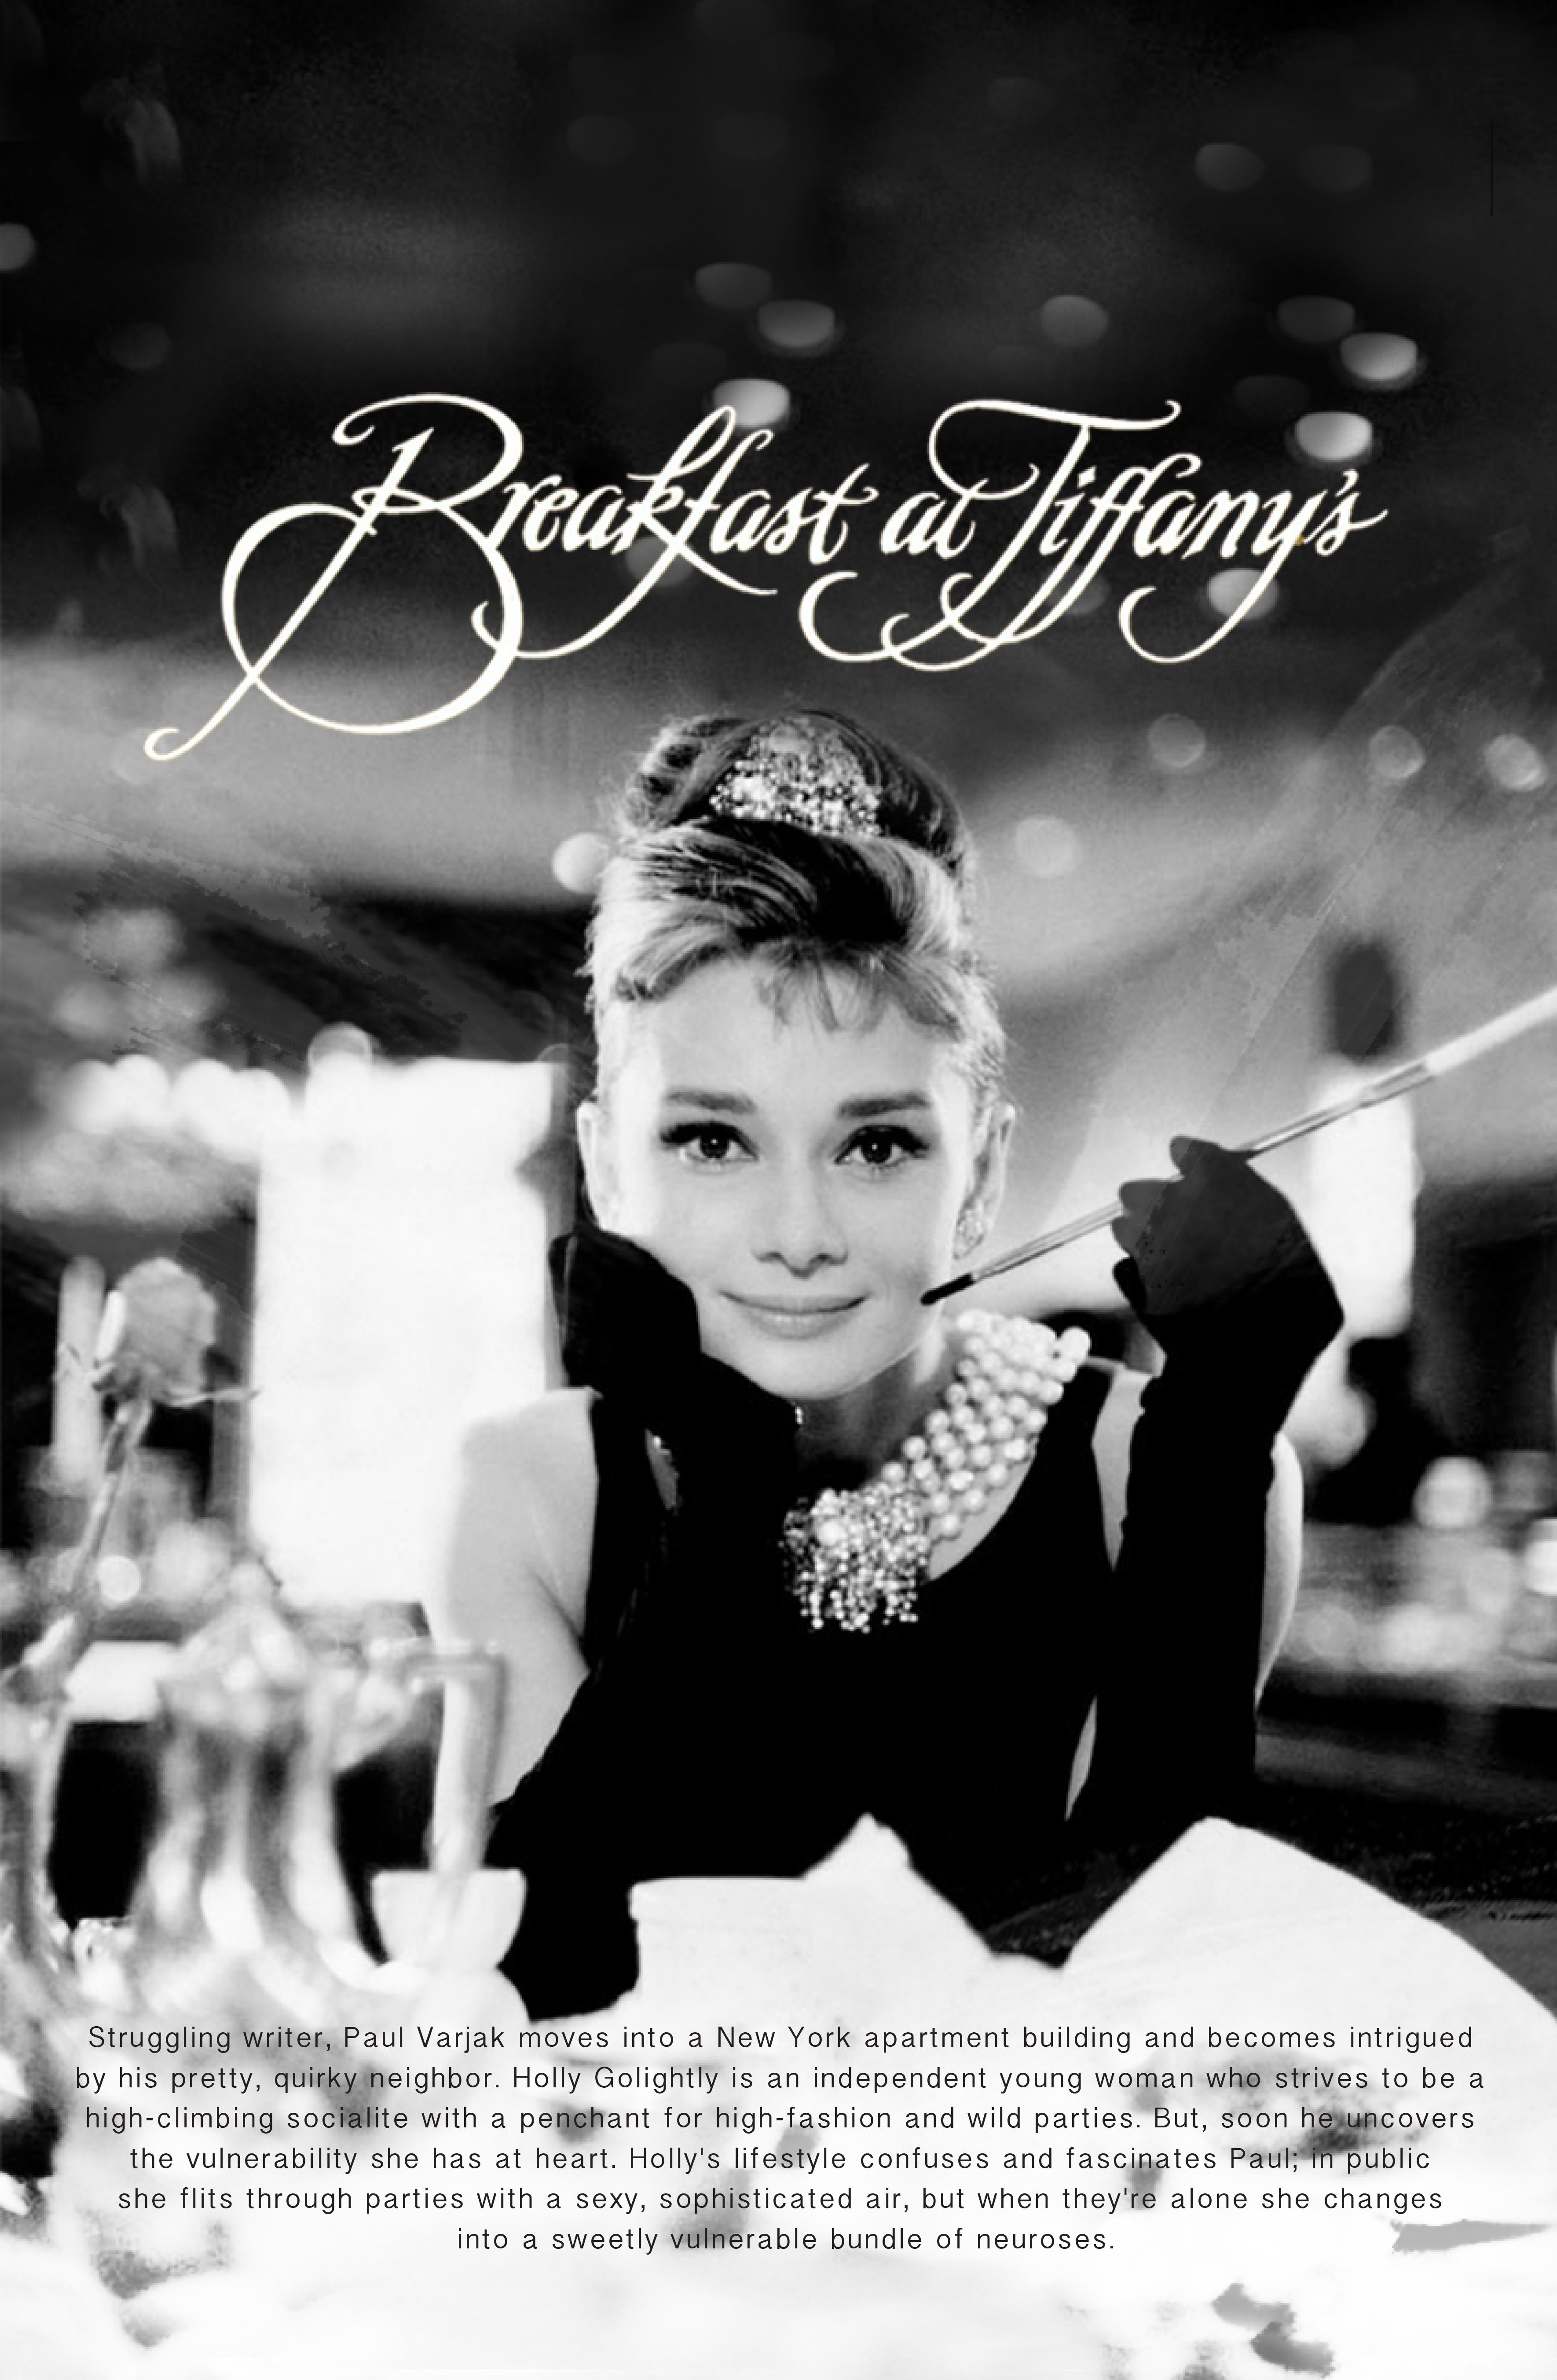 BREAKFAST AT TIFFANY'S Hailed as AudreyHepburn's most